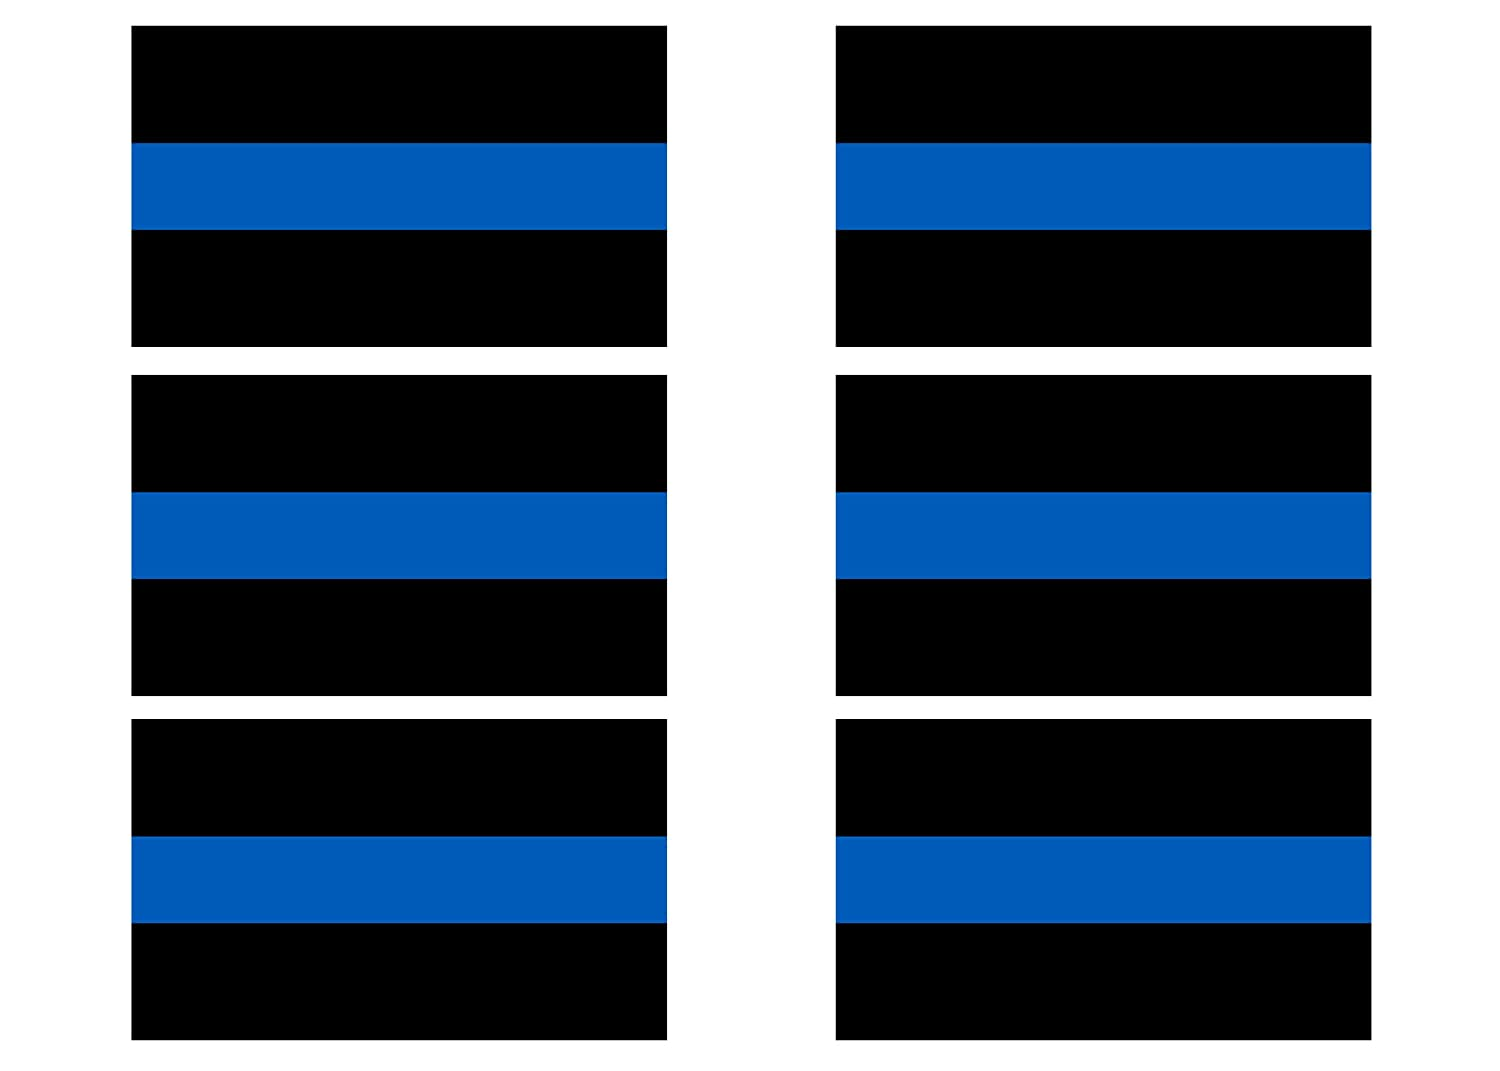 Thin Blue Line Blue Lives Matter Sticker Vinyl Decal Support of Police and Law Enforcement Officers 6 Pack